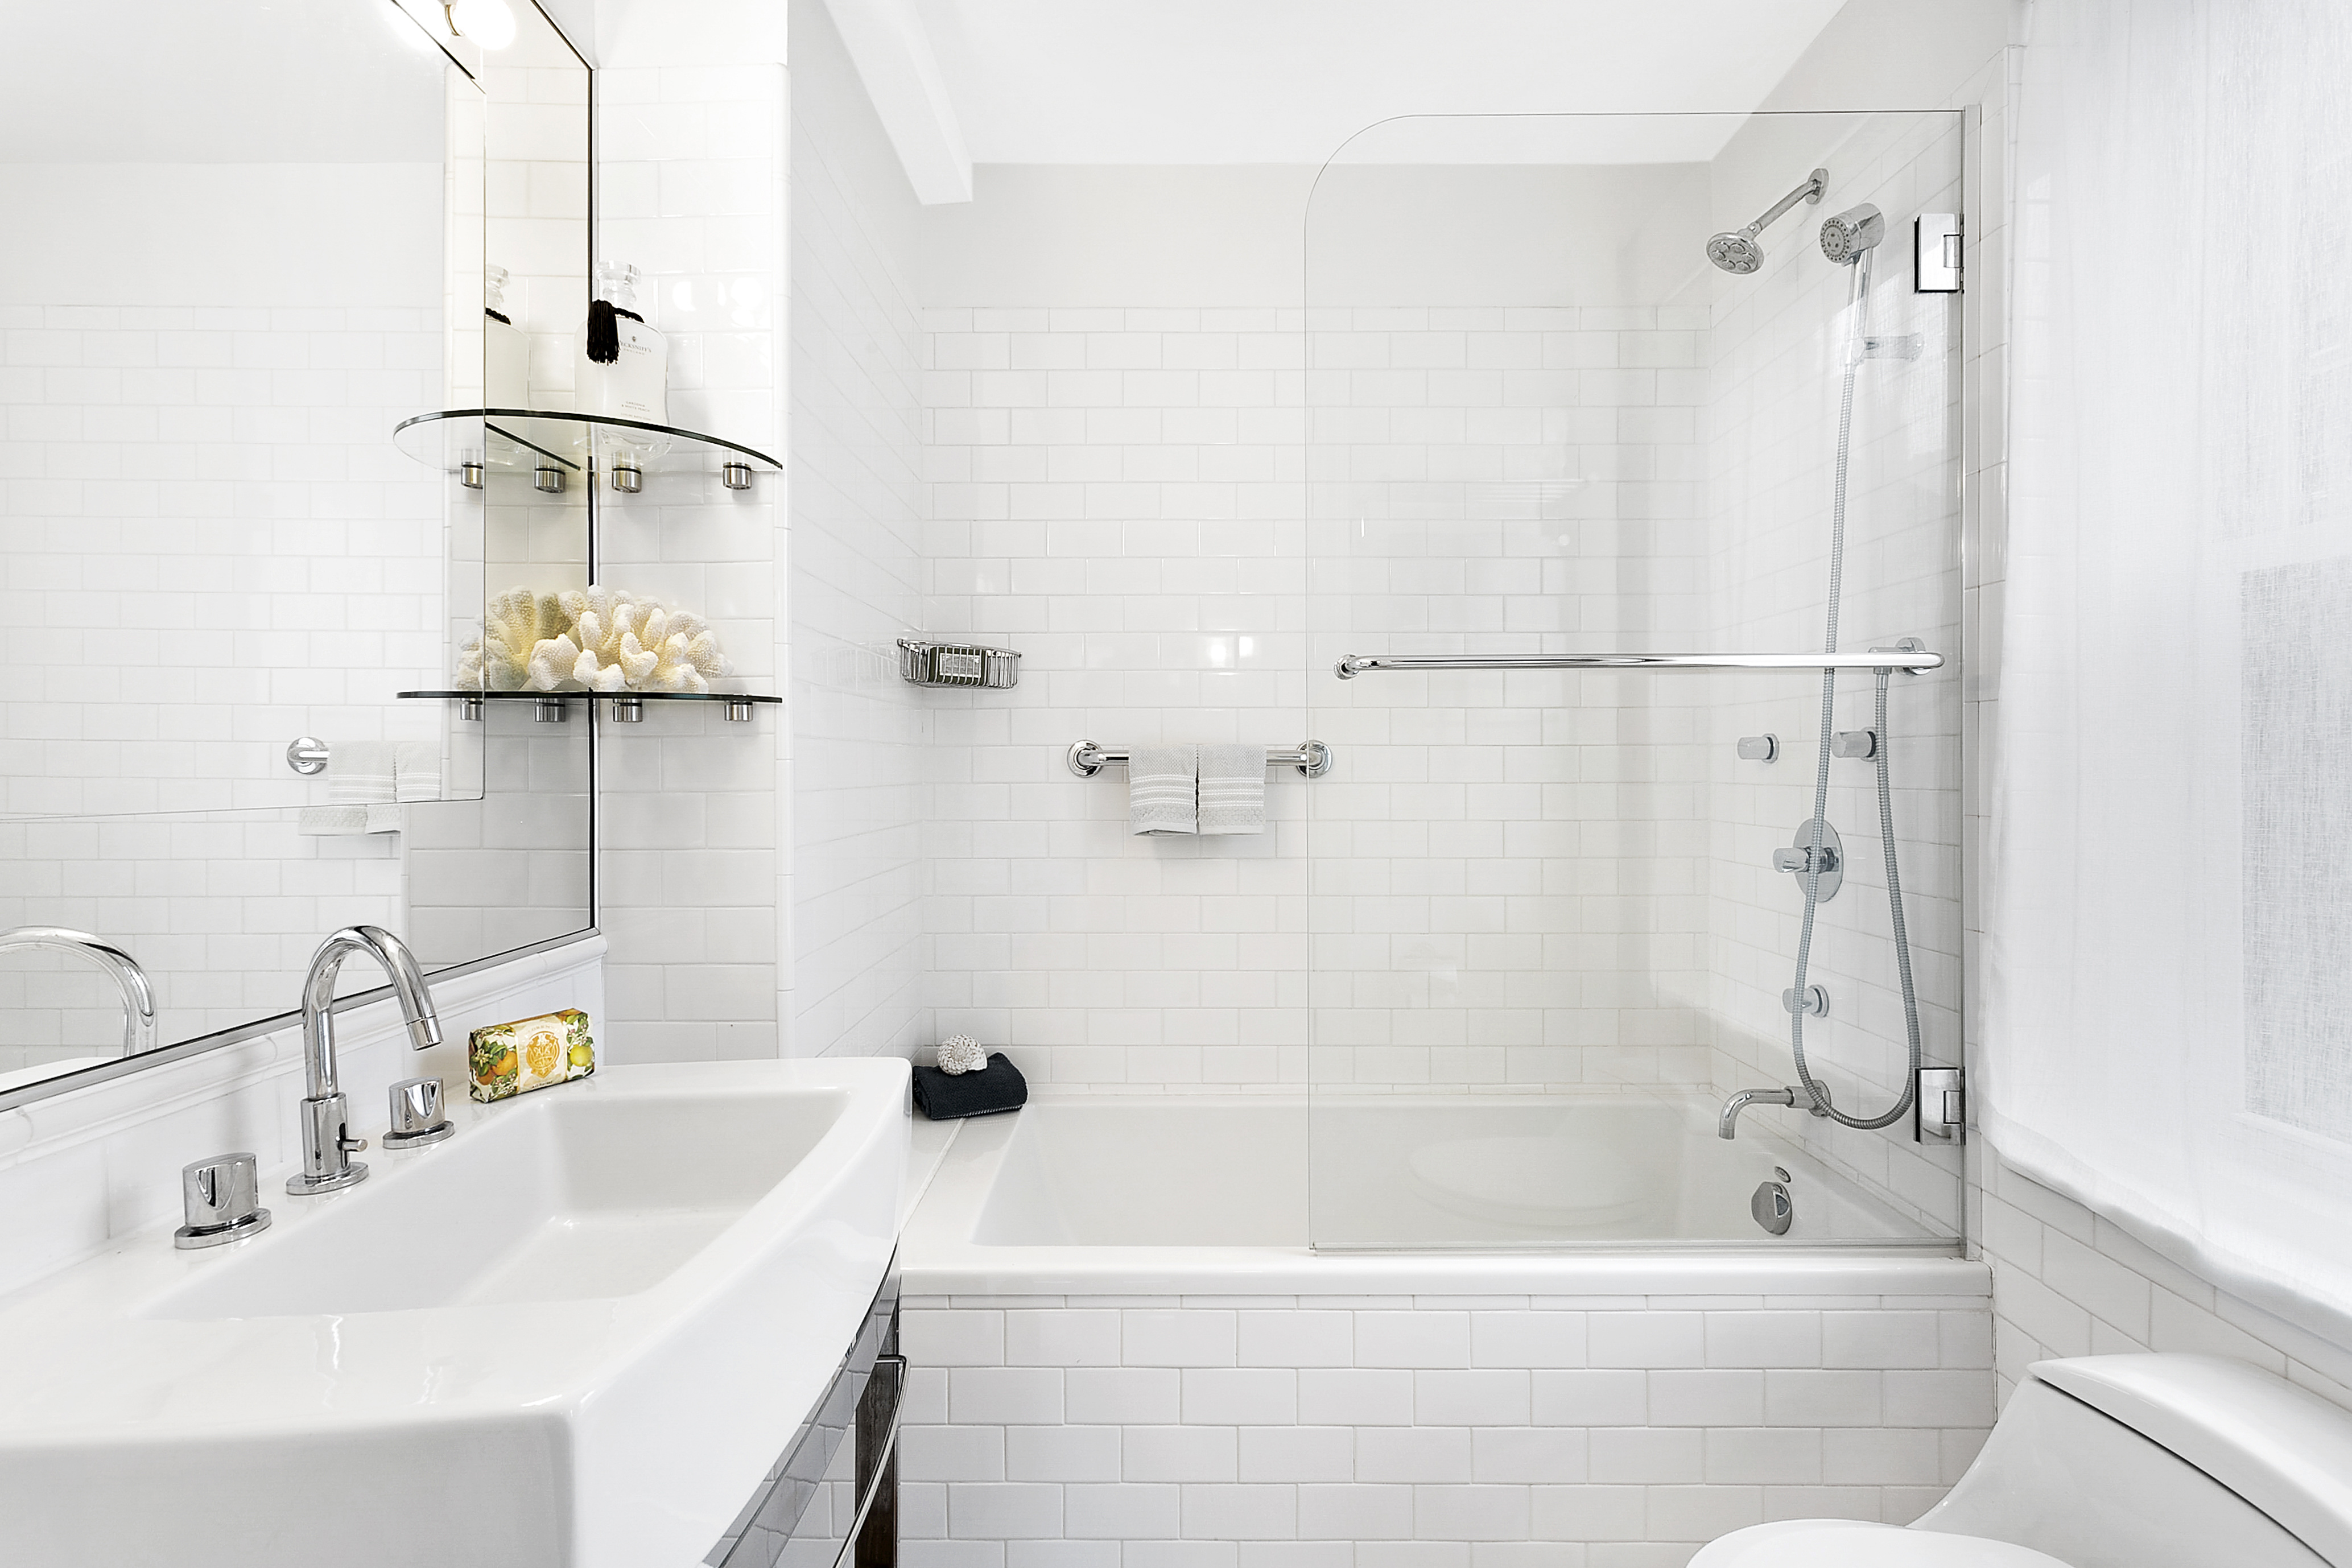 10 NYC bathroom renovations that will improve your life—and your